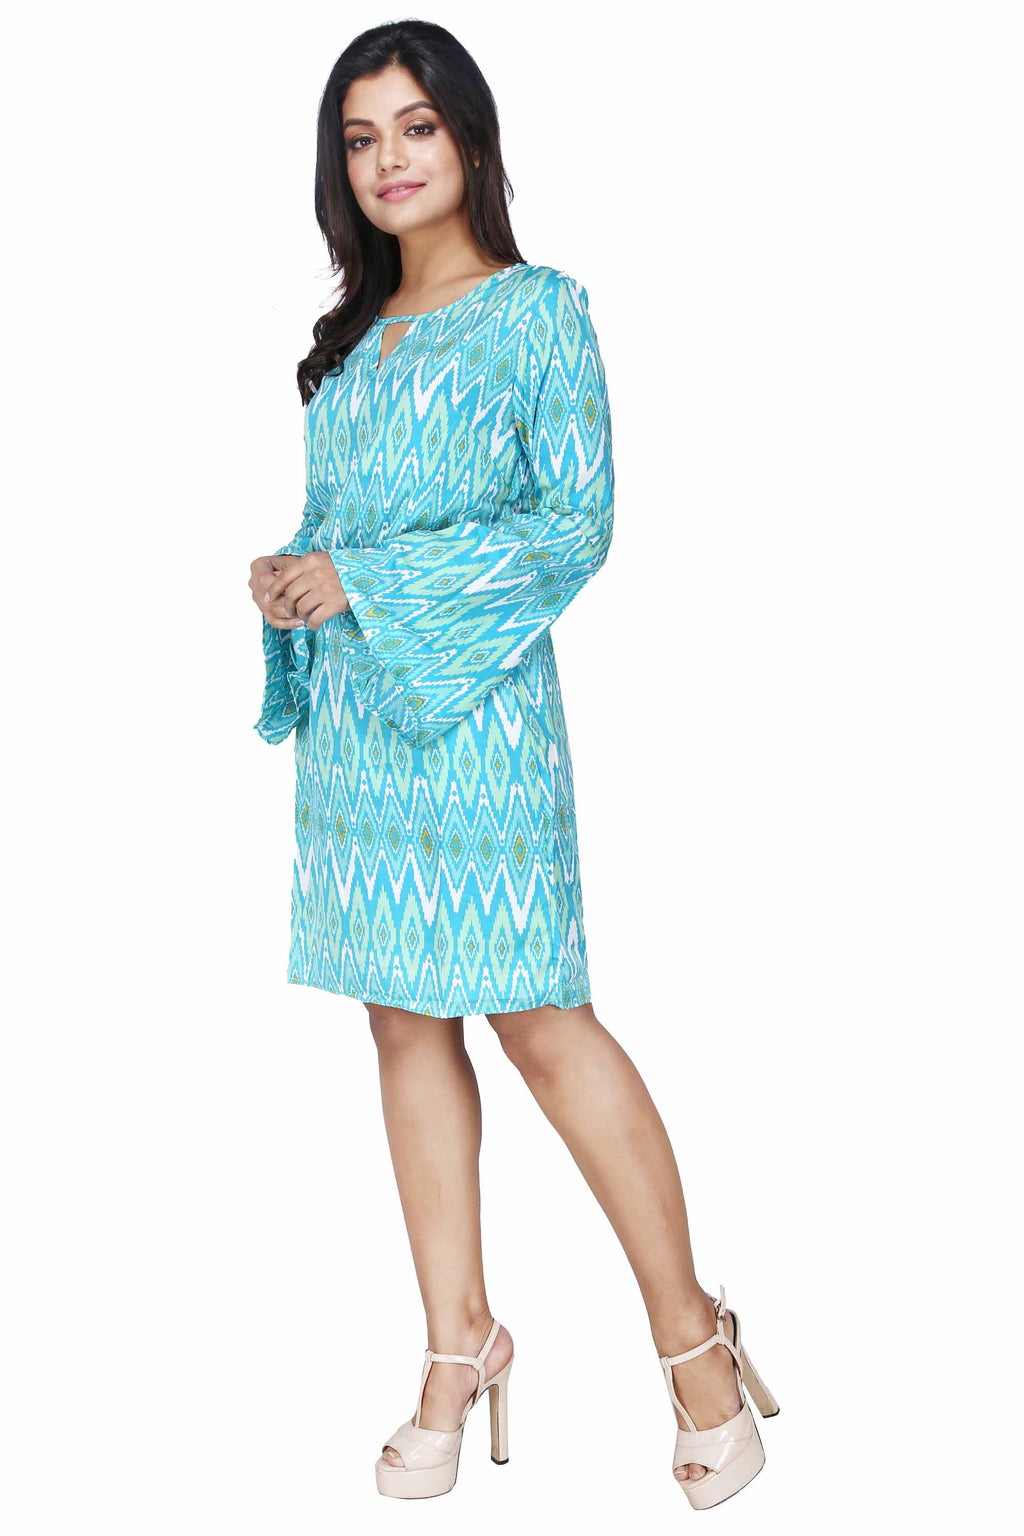 Women's Printed Mint Midi Dress - K705M